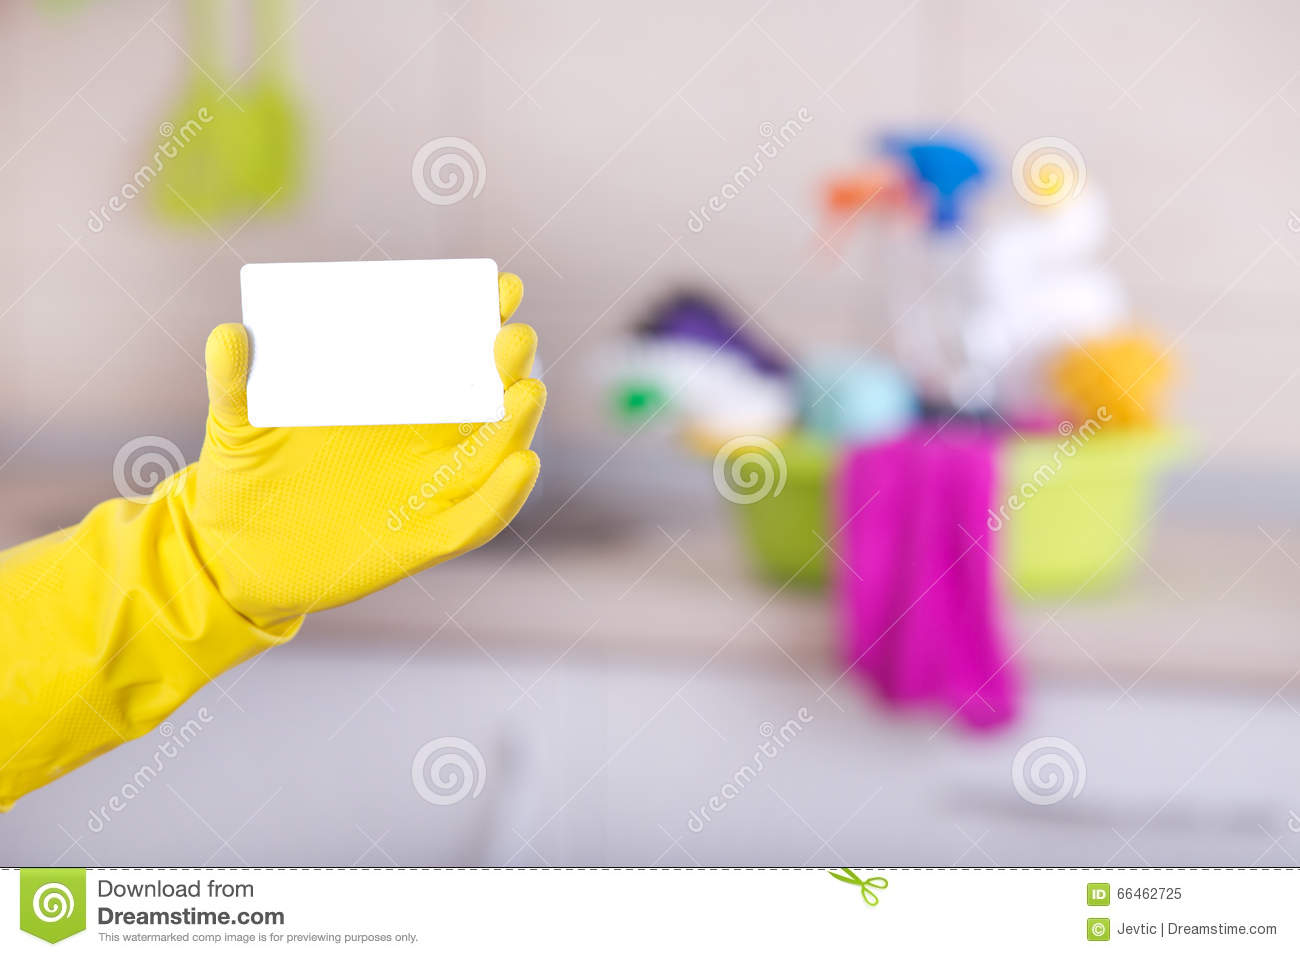 Cleaning Service Business Card Stock Image - Image of color ...